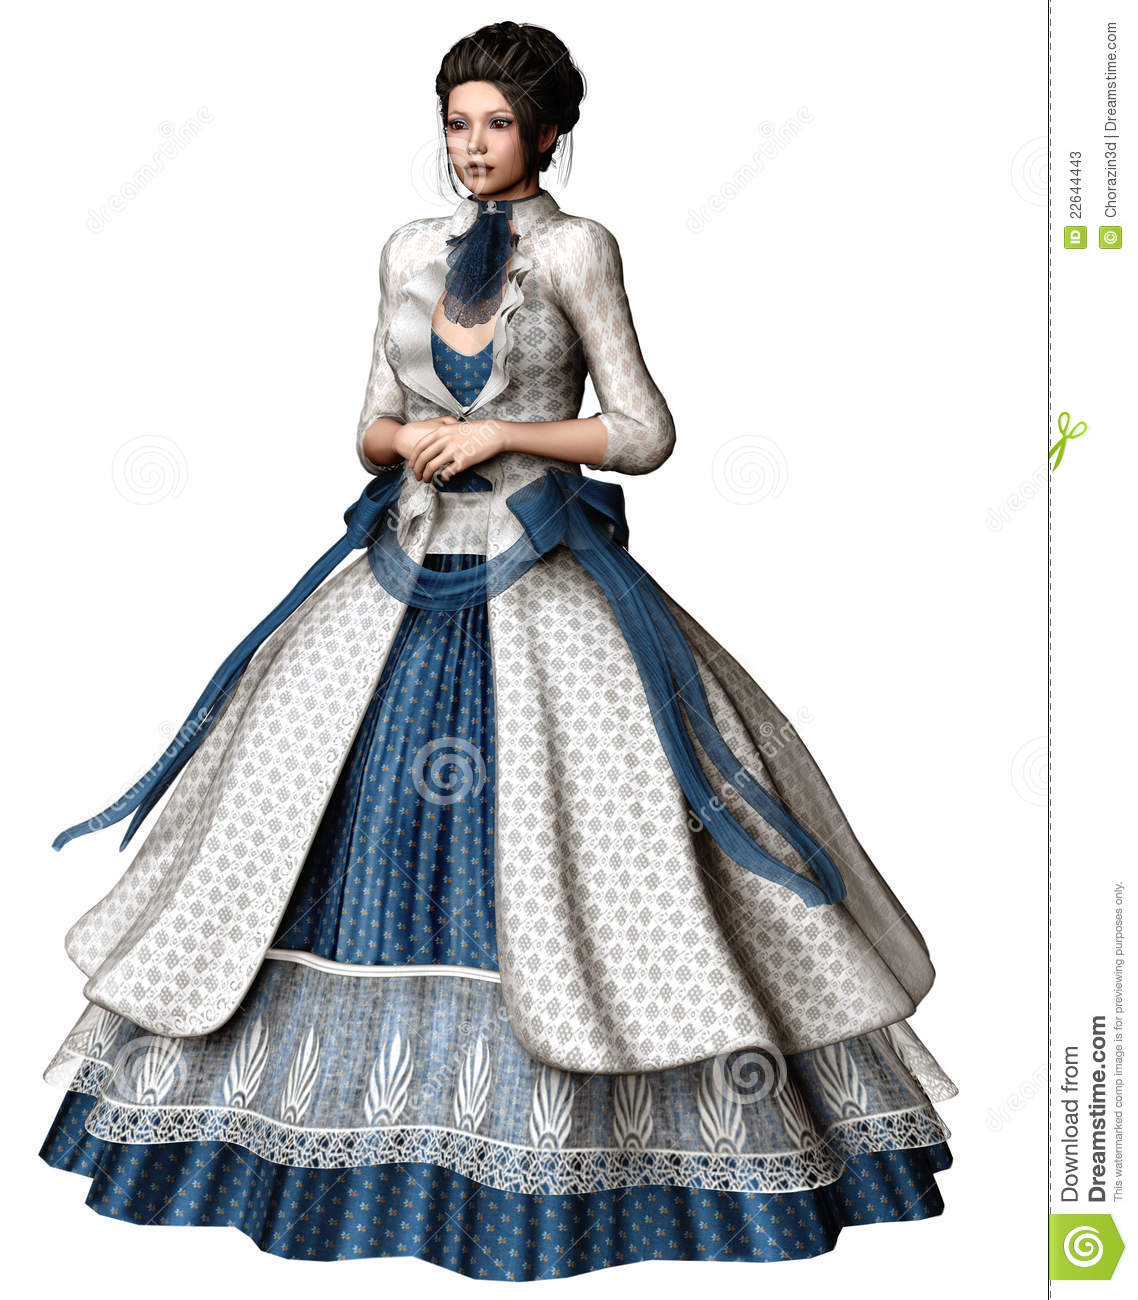 white curtains with Stock Photos Fantasy Princess White Dress Image22644443 on Native American Proverbs additionally Kitchenaid Electric Mixer together with Use Blue And White Rug likewise There Is There Are 97 likewise Quantum Dots.